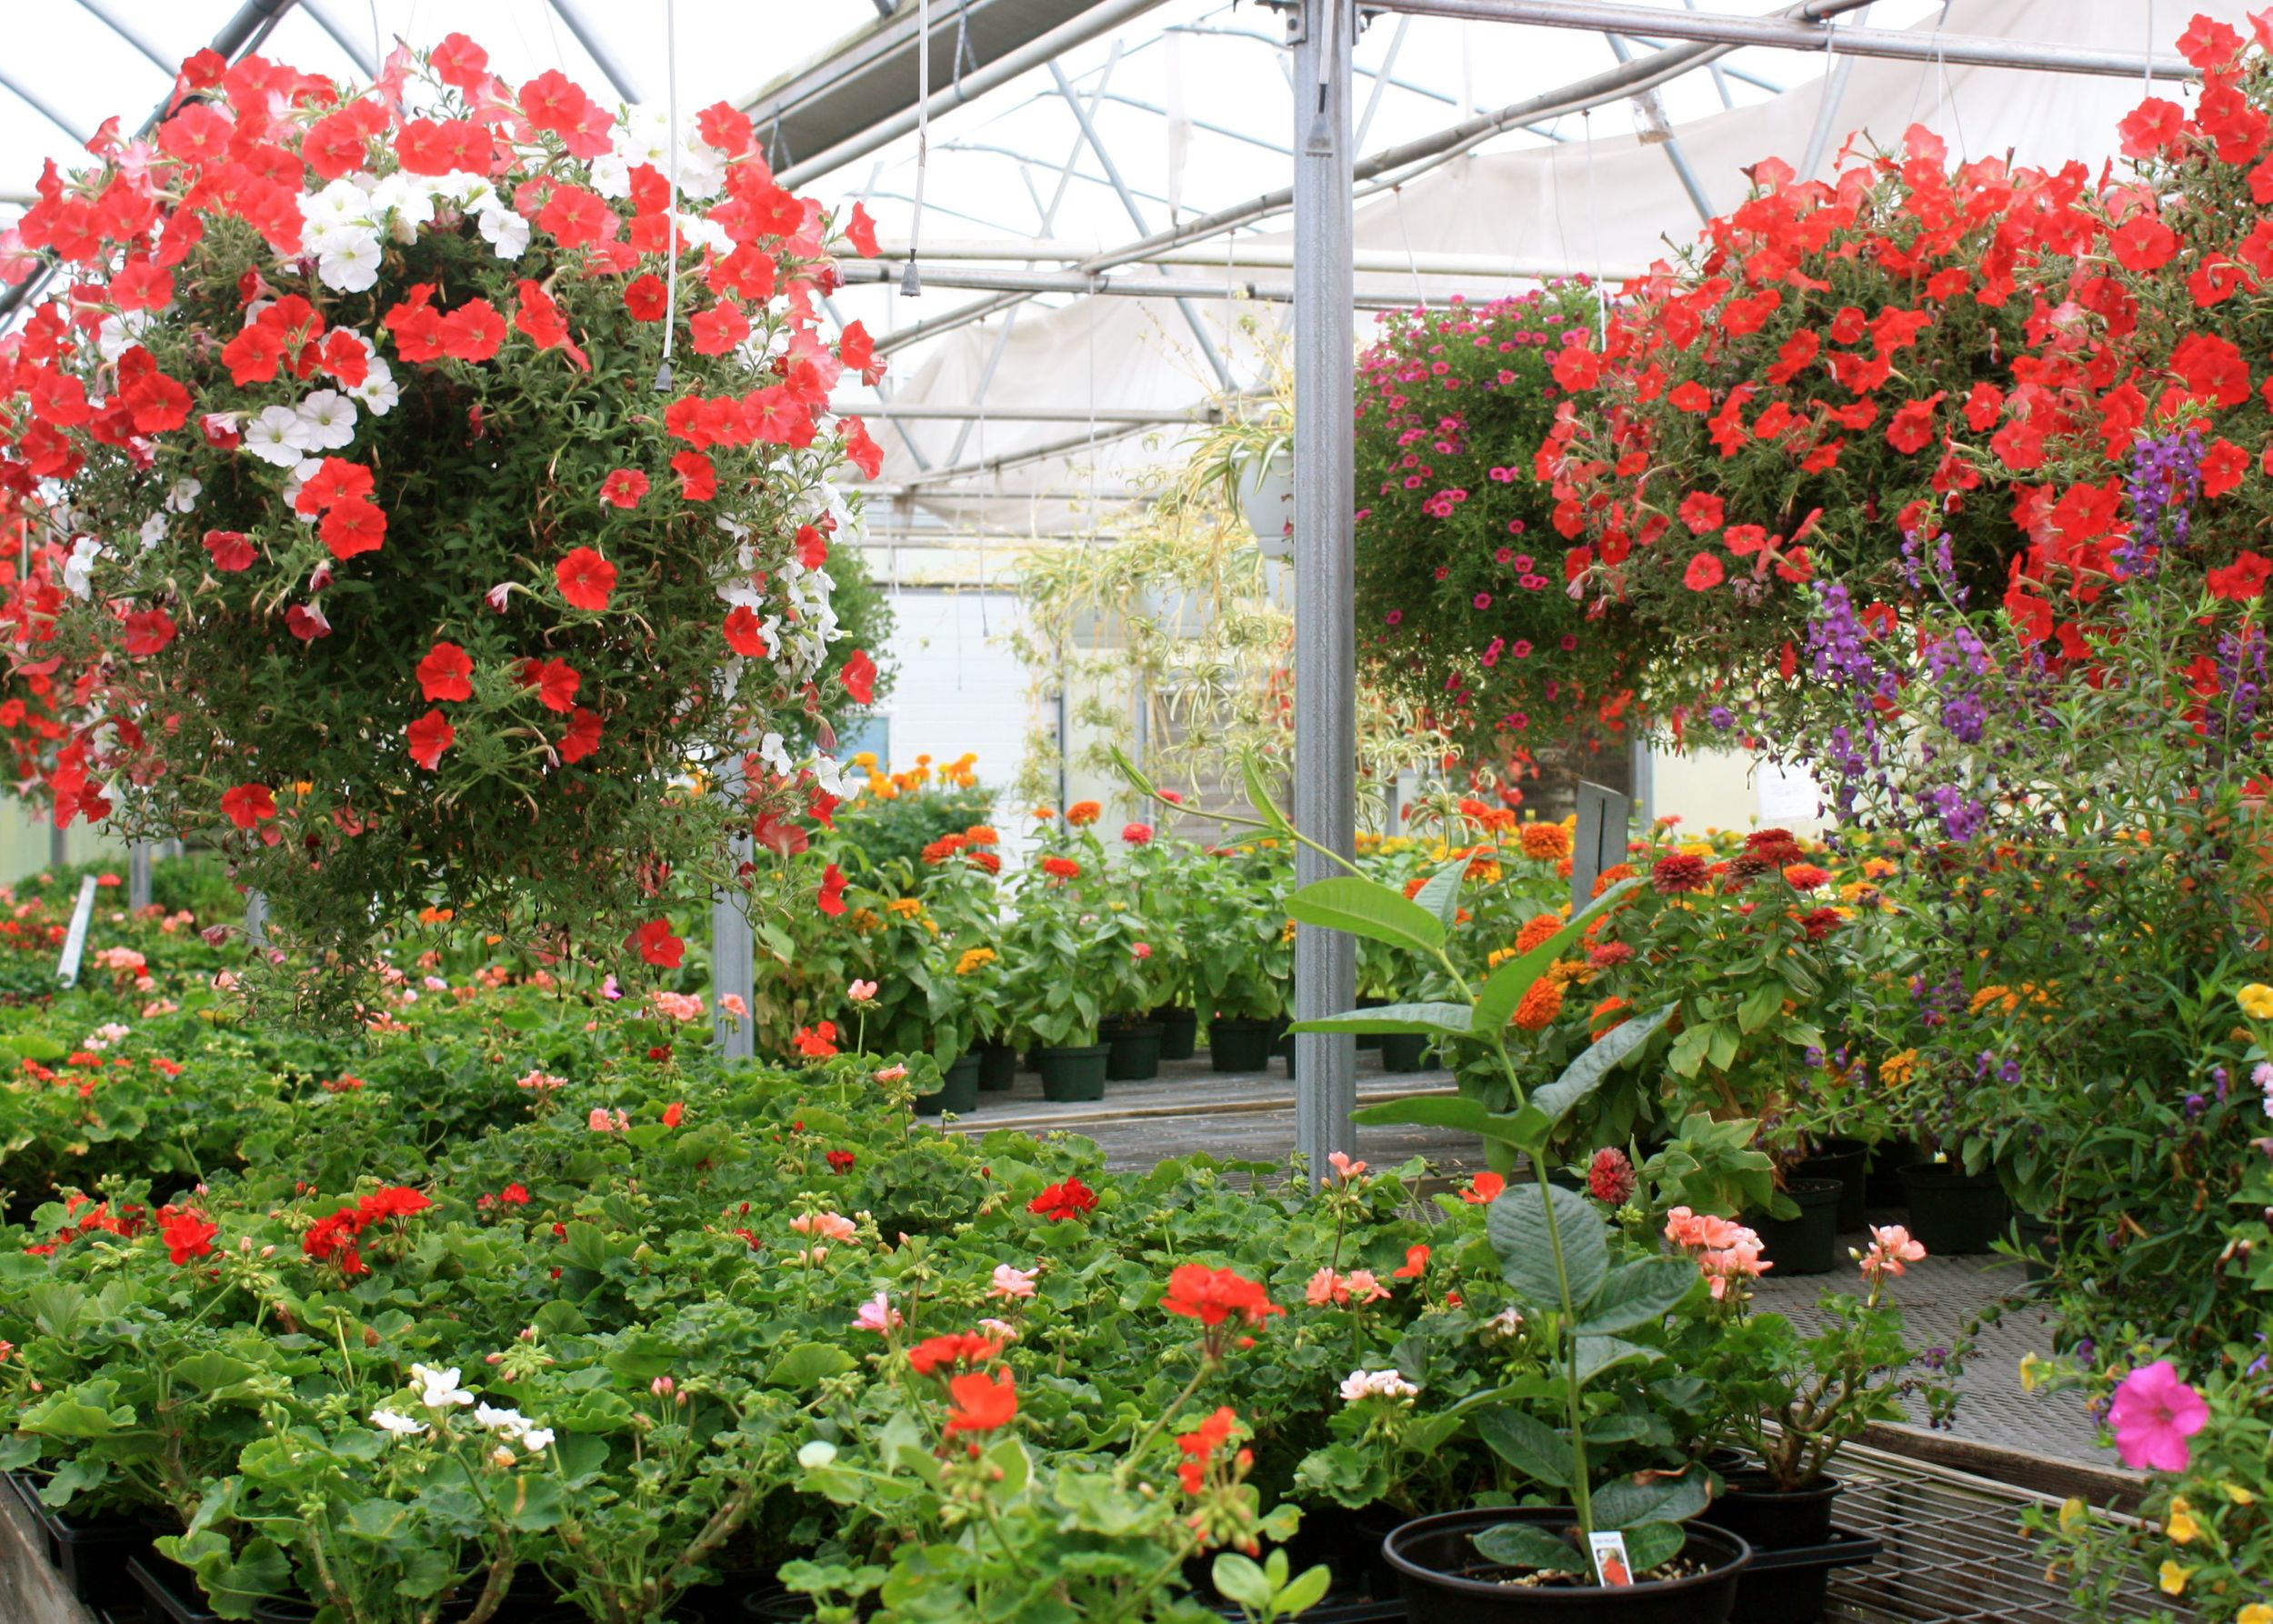 These are the greenhouses in mid summer, full of bedding plants and hanging baskets grown on the farm.